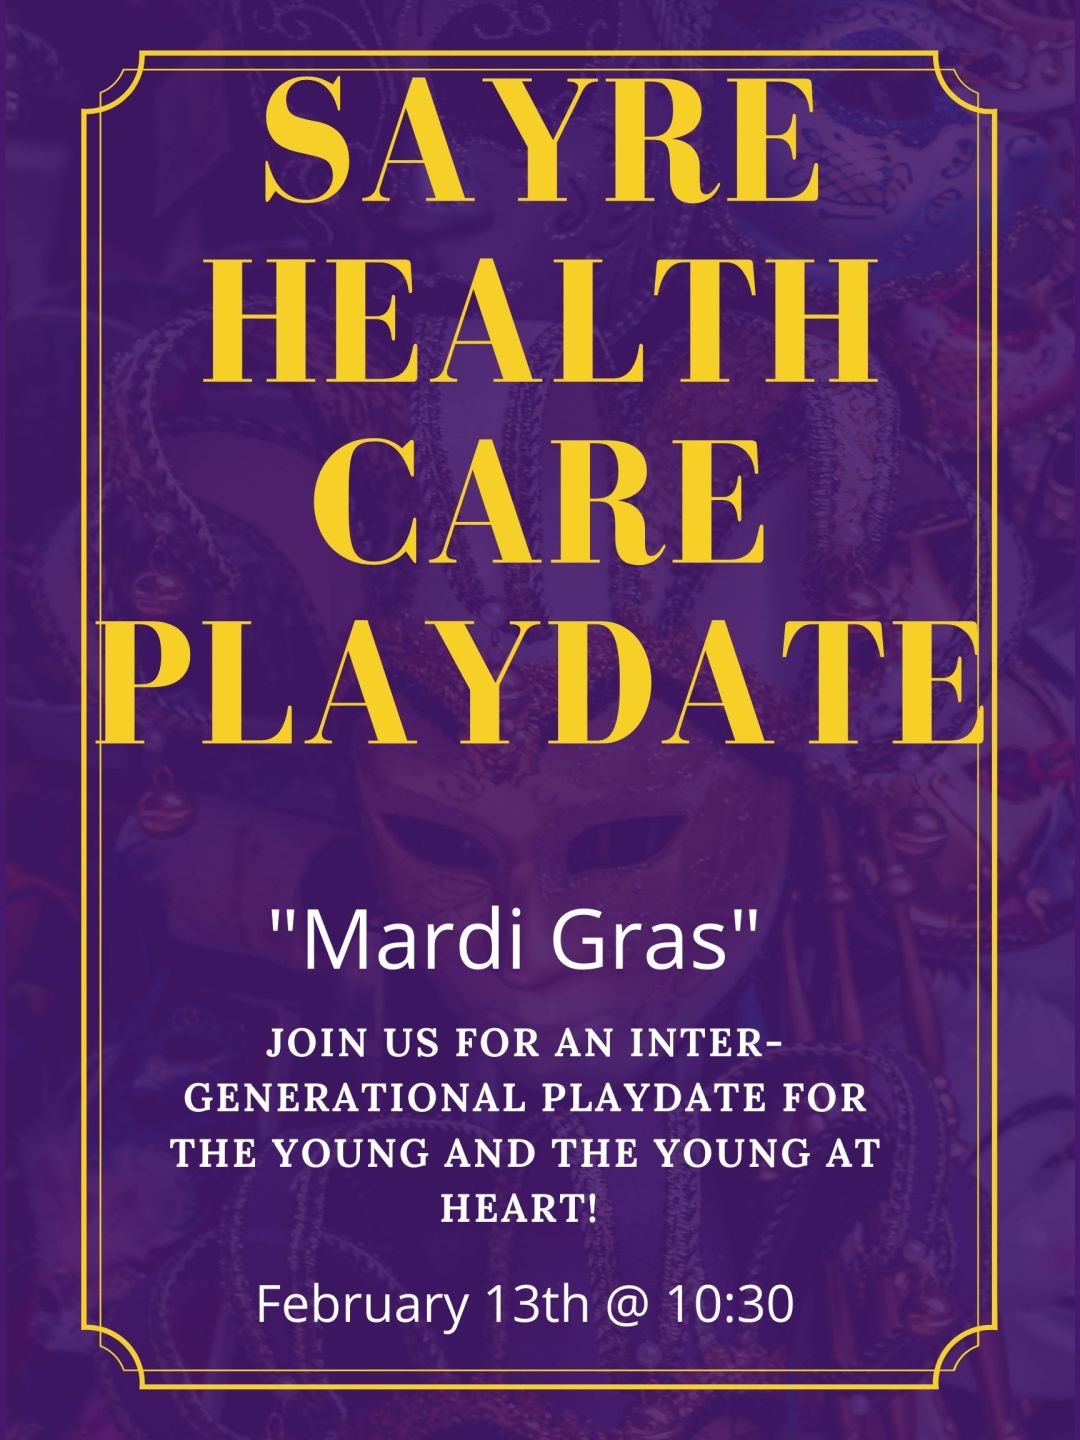 Sayre Healthcare Playdate